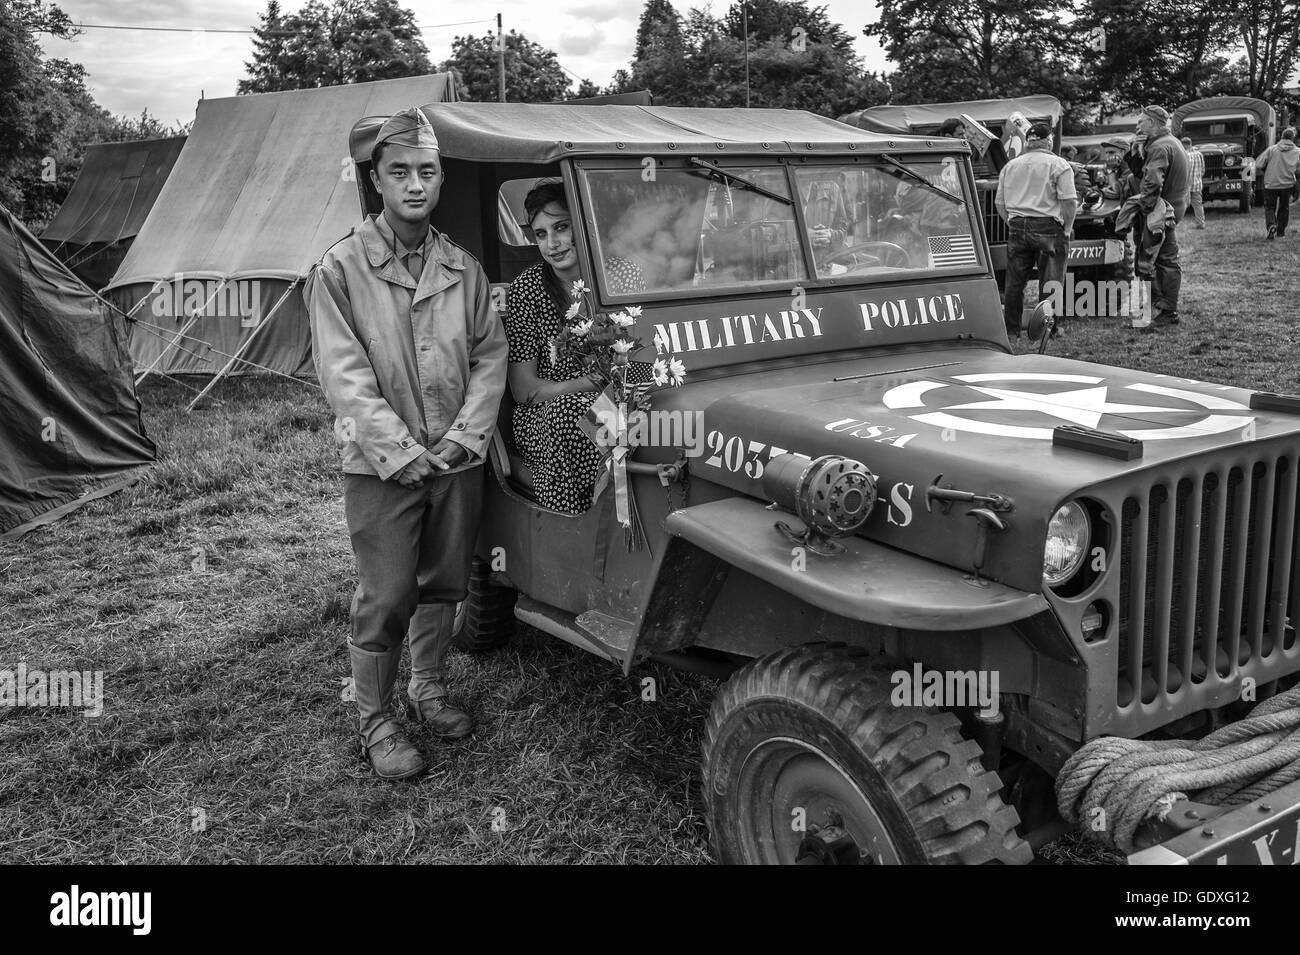 Man and woman pose next to a Willys Jeep at the D-Day reenactment in France, 2014 - Stock Image